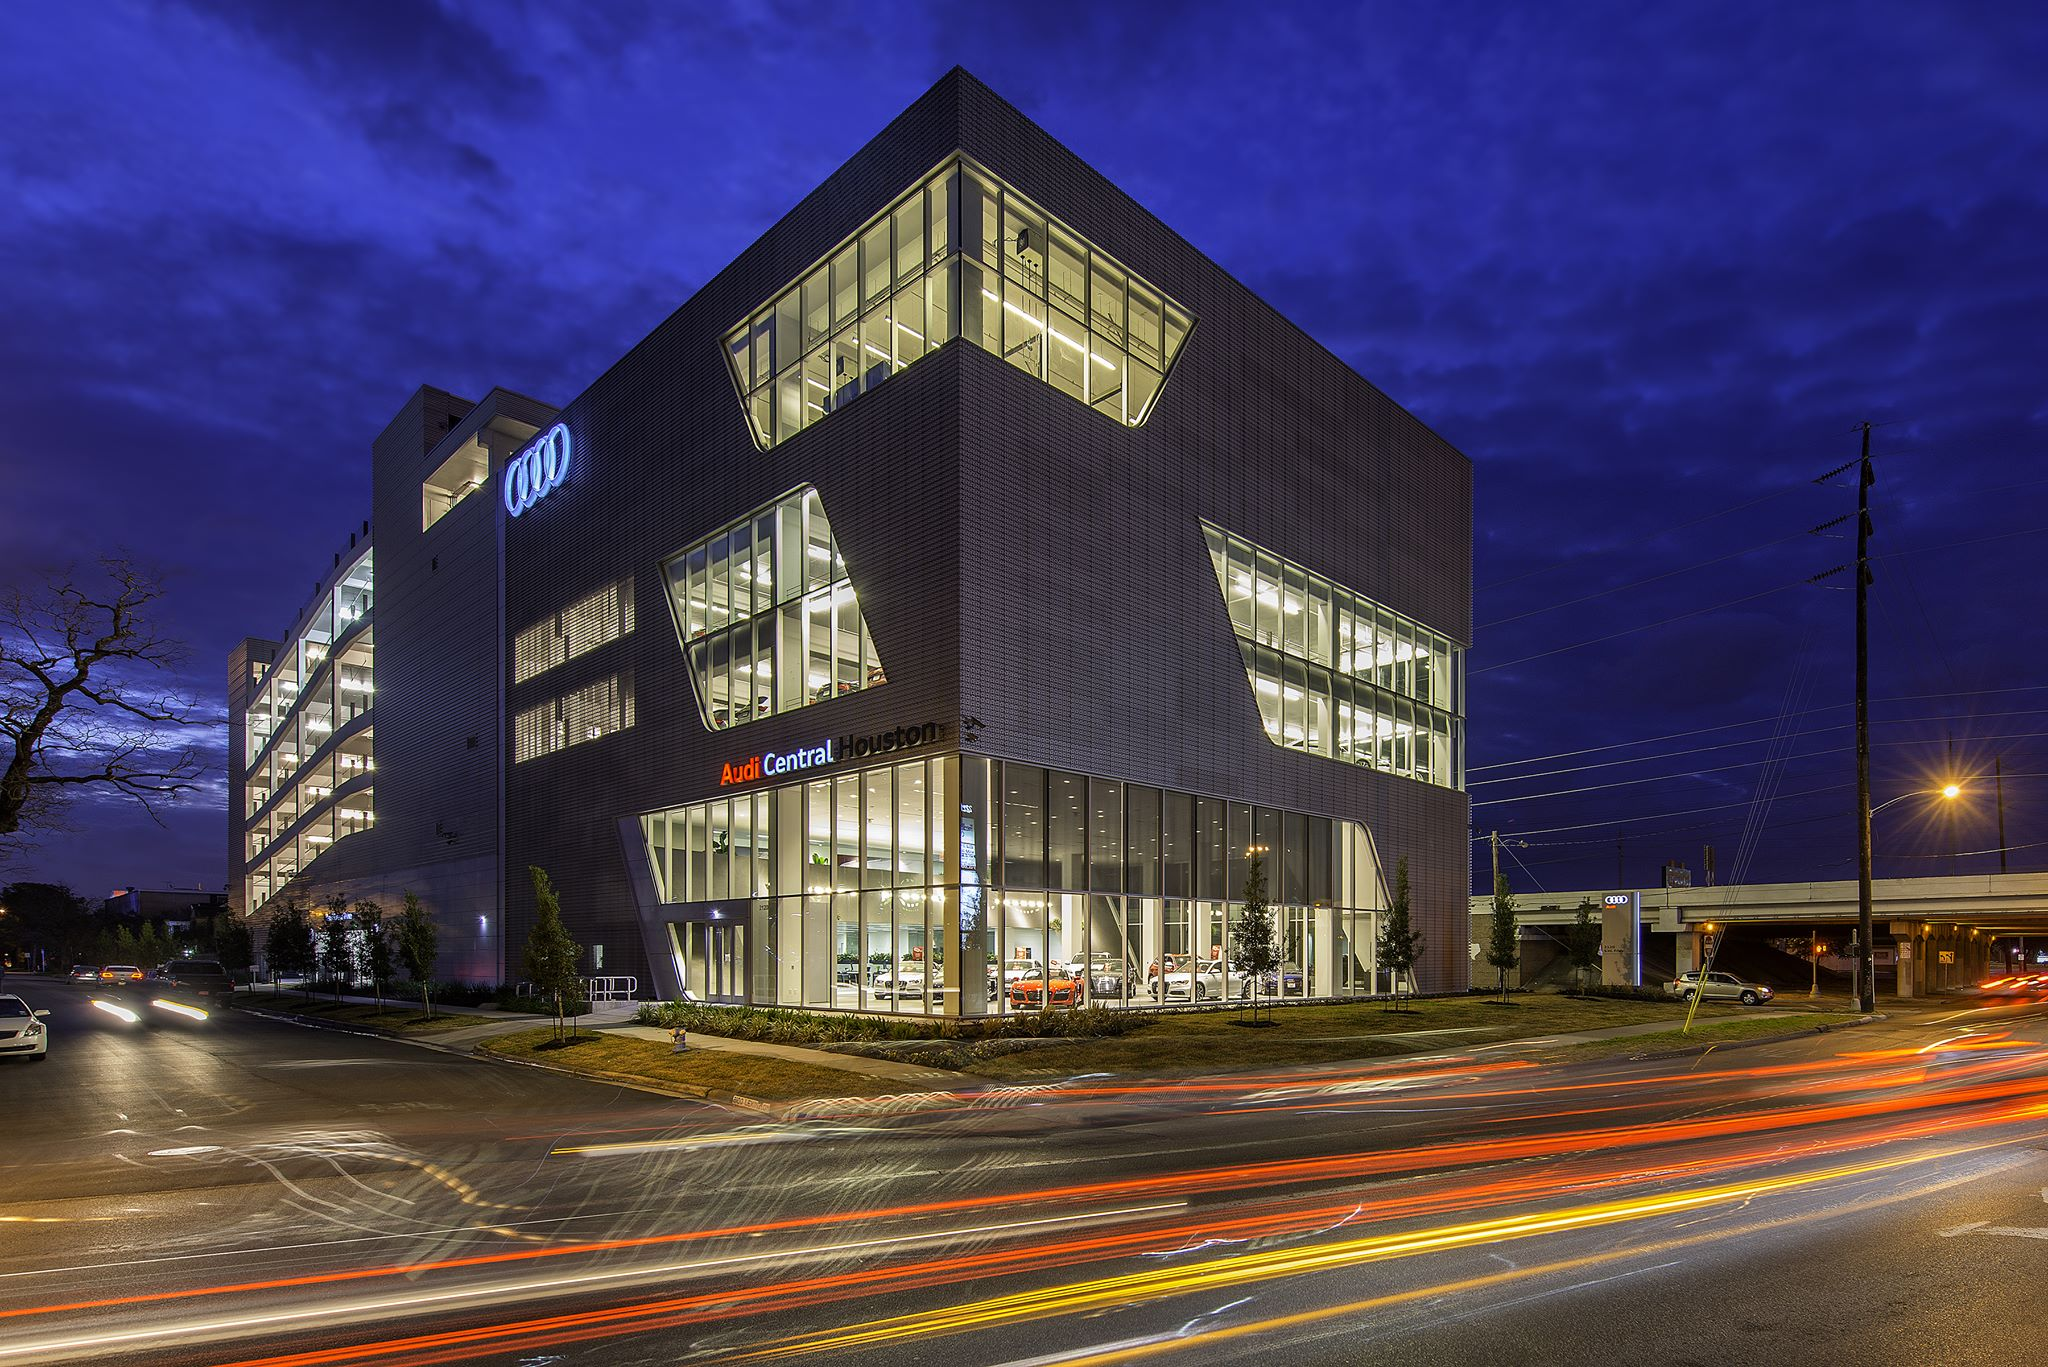 Audi Central Houston Facility - Momentum audi